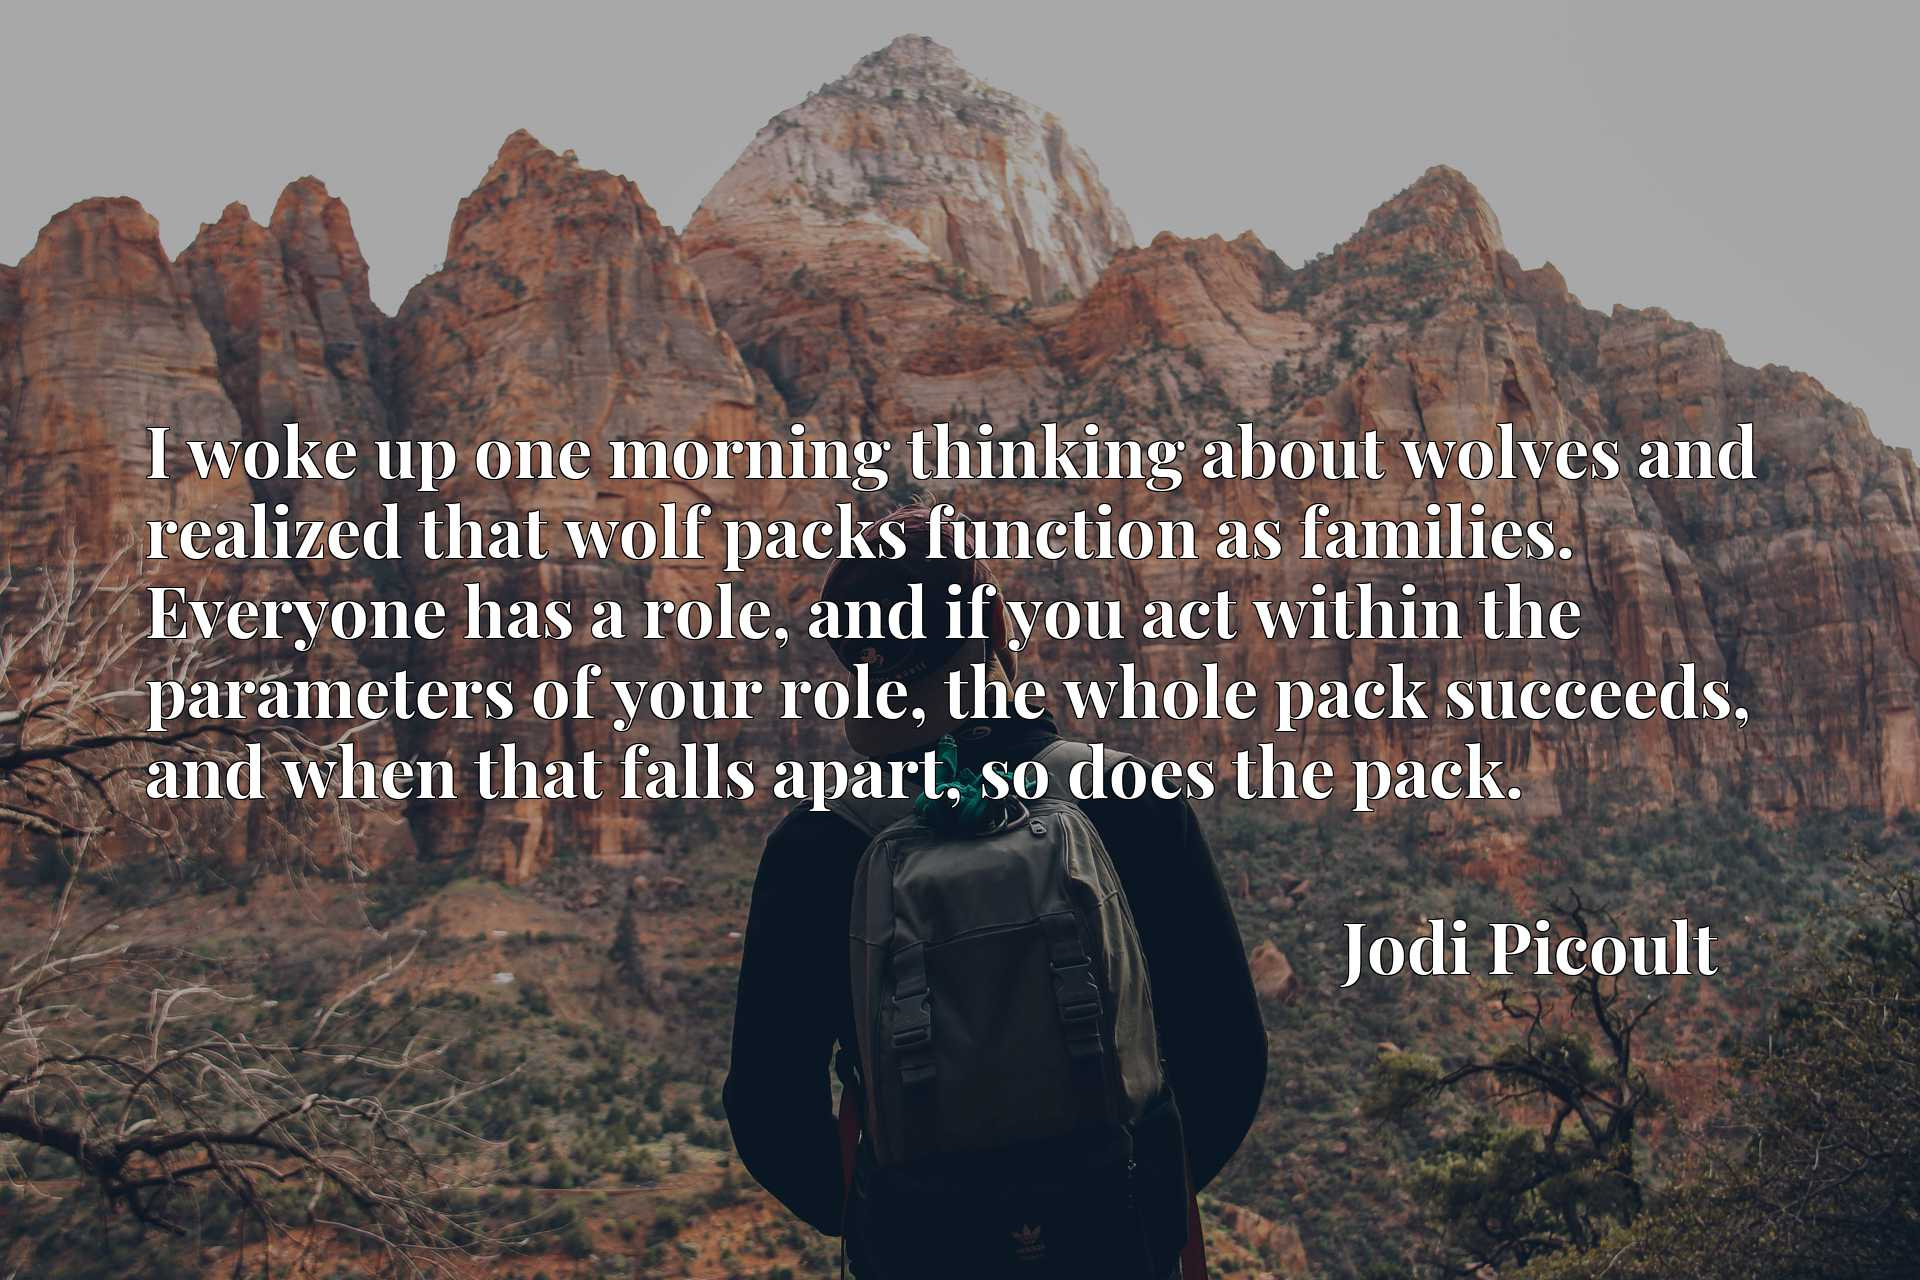 I woke up one morning thinking about wolves and realized that wolf packs function as families. Everyone has a role, and if you act within the parameters of your role, the whole pack succeeds, and when that falls apart, so does the pack.